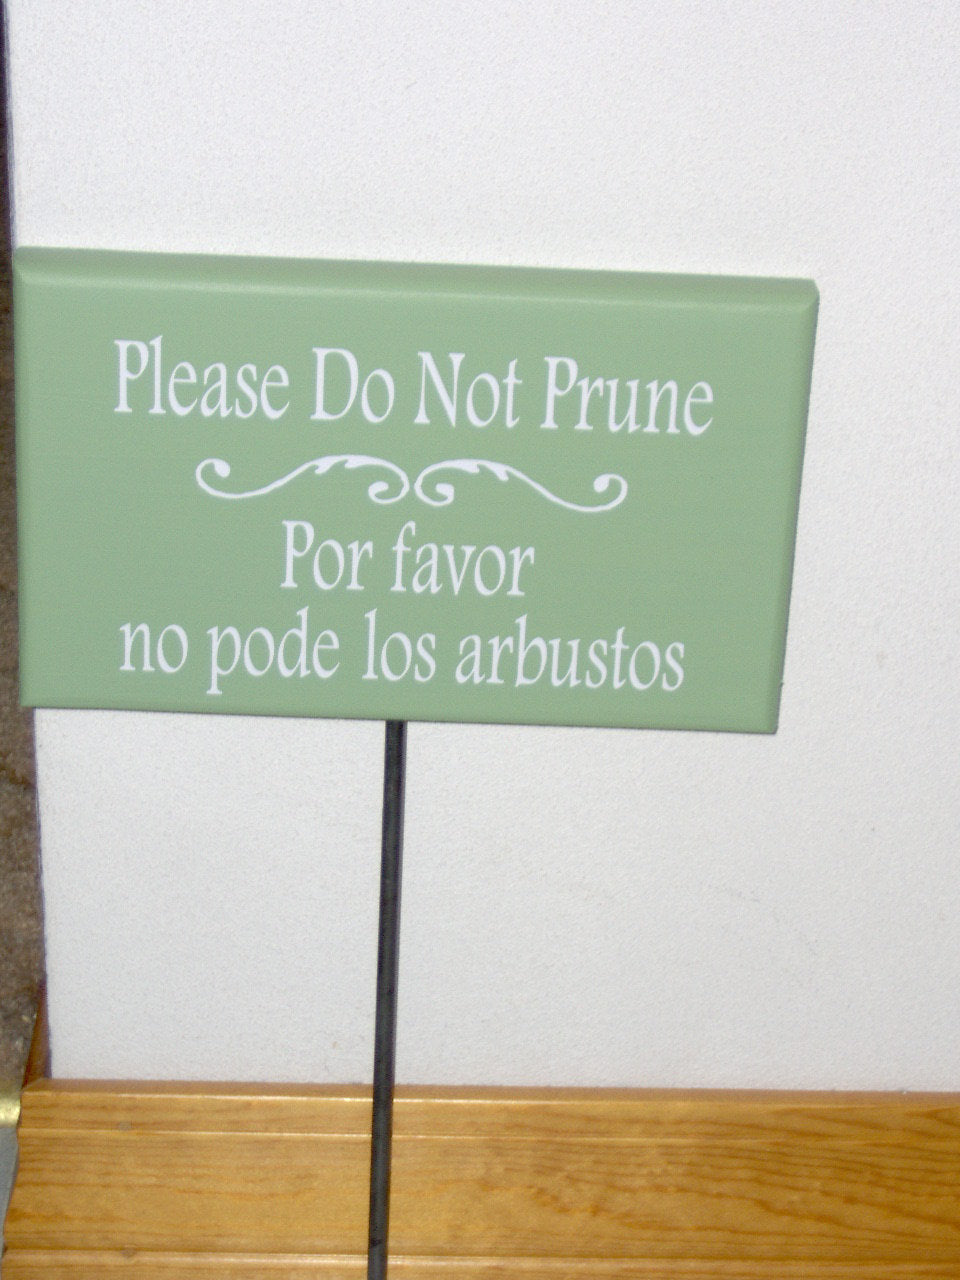 Please Do Not Prune Wood Vinyl Yard Art Stake Sign English Spanish Outdoor Garden Sign Lawn Ornament Outdoor House Sign Wooden Home Decor